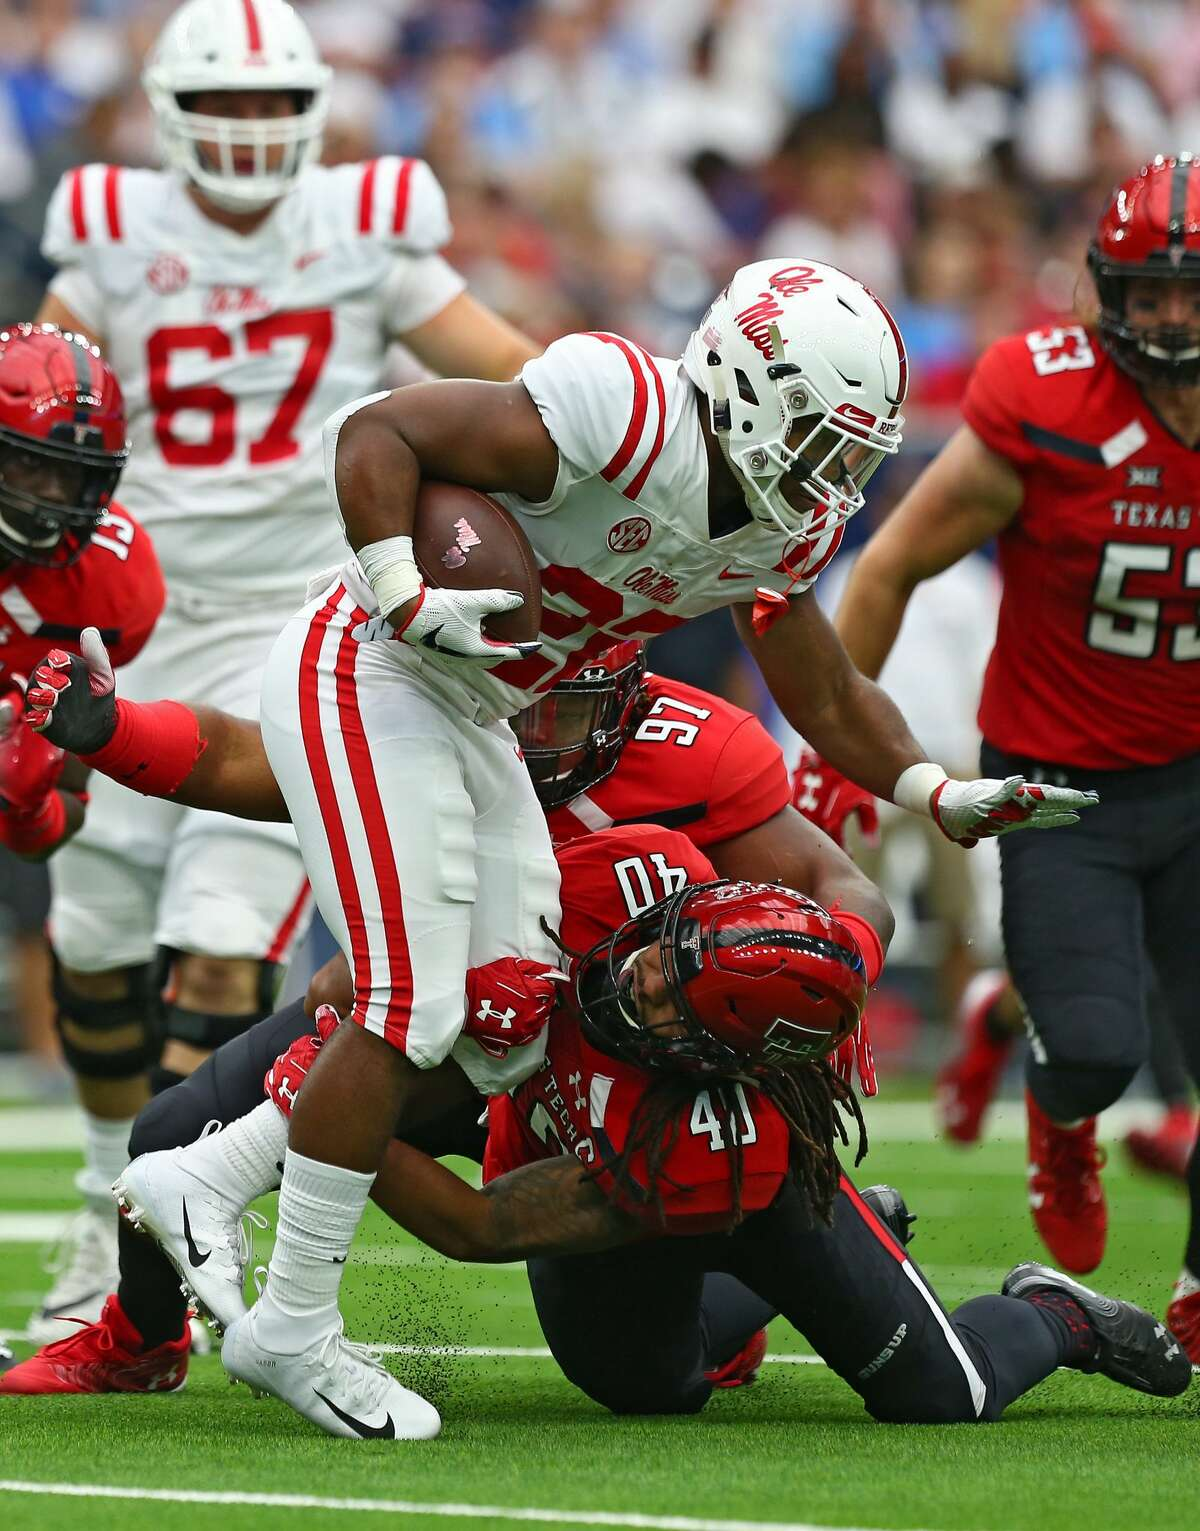 Mississippi Rebels running back Scottie Phillips (22) is tackled by Texas Tech Red Raiders linebacker Dakota Allen (40) during the first quarter of an NCAA game at NRG Stadium Saturday, Sept. 1, 2018, in Houston.